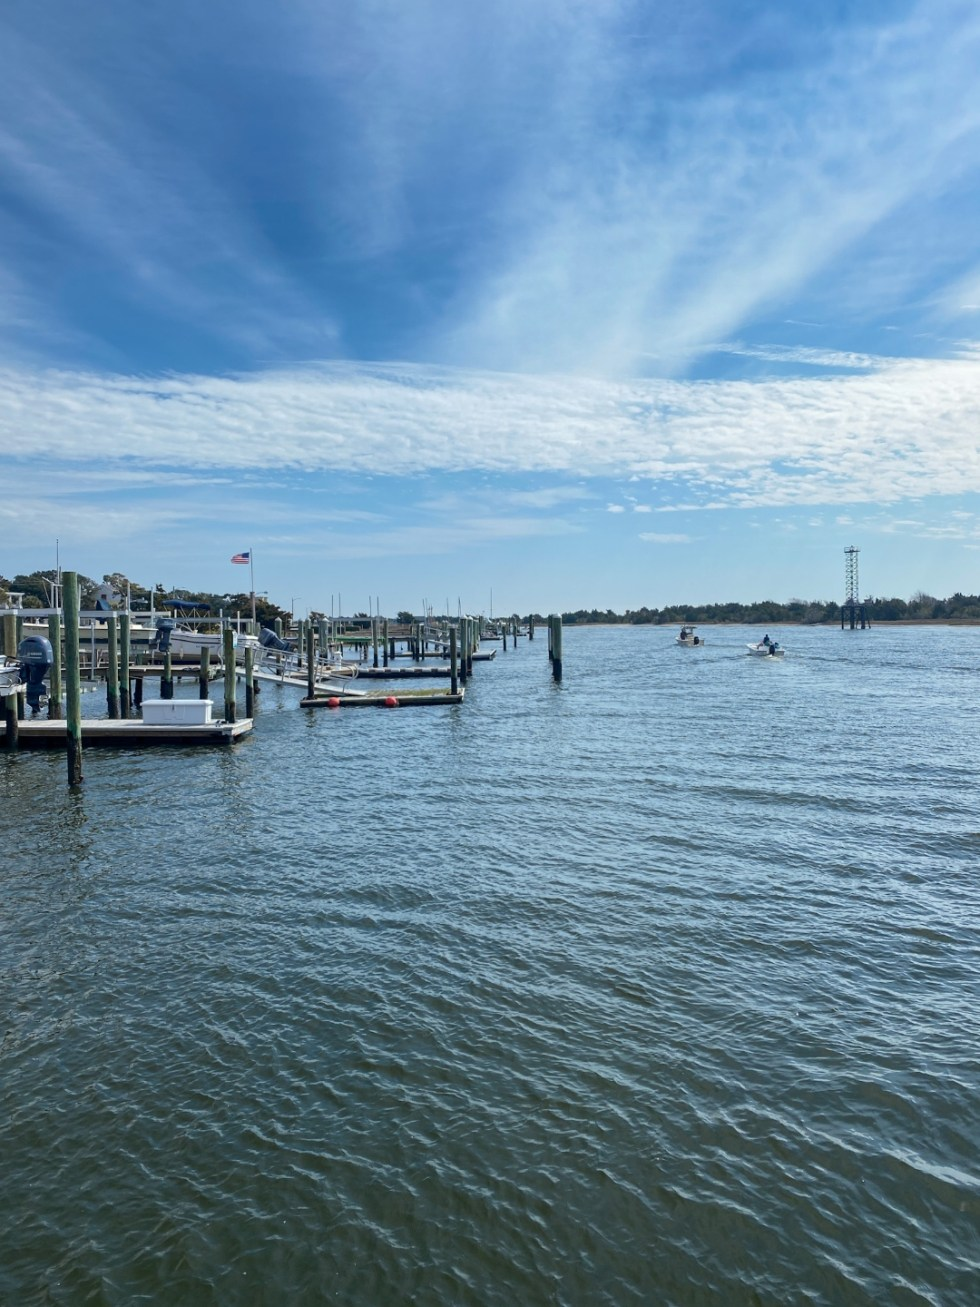 Weekend Travel: The Best Things to Do in Beaufort NC in 48 Hours - I'm Fixin' To - @imfixintoblog |Things to Do in Beaufort NC by popular NC travel blog, I'm Fixin' To: image of a boat dock.